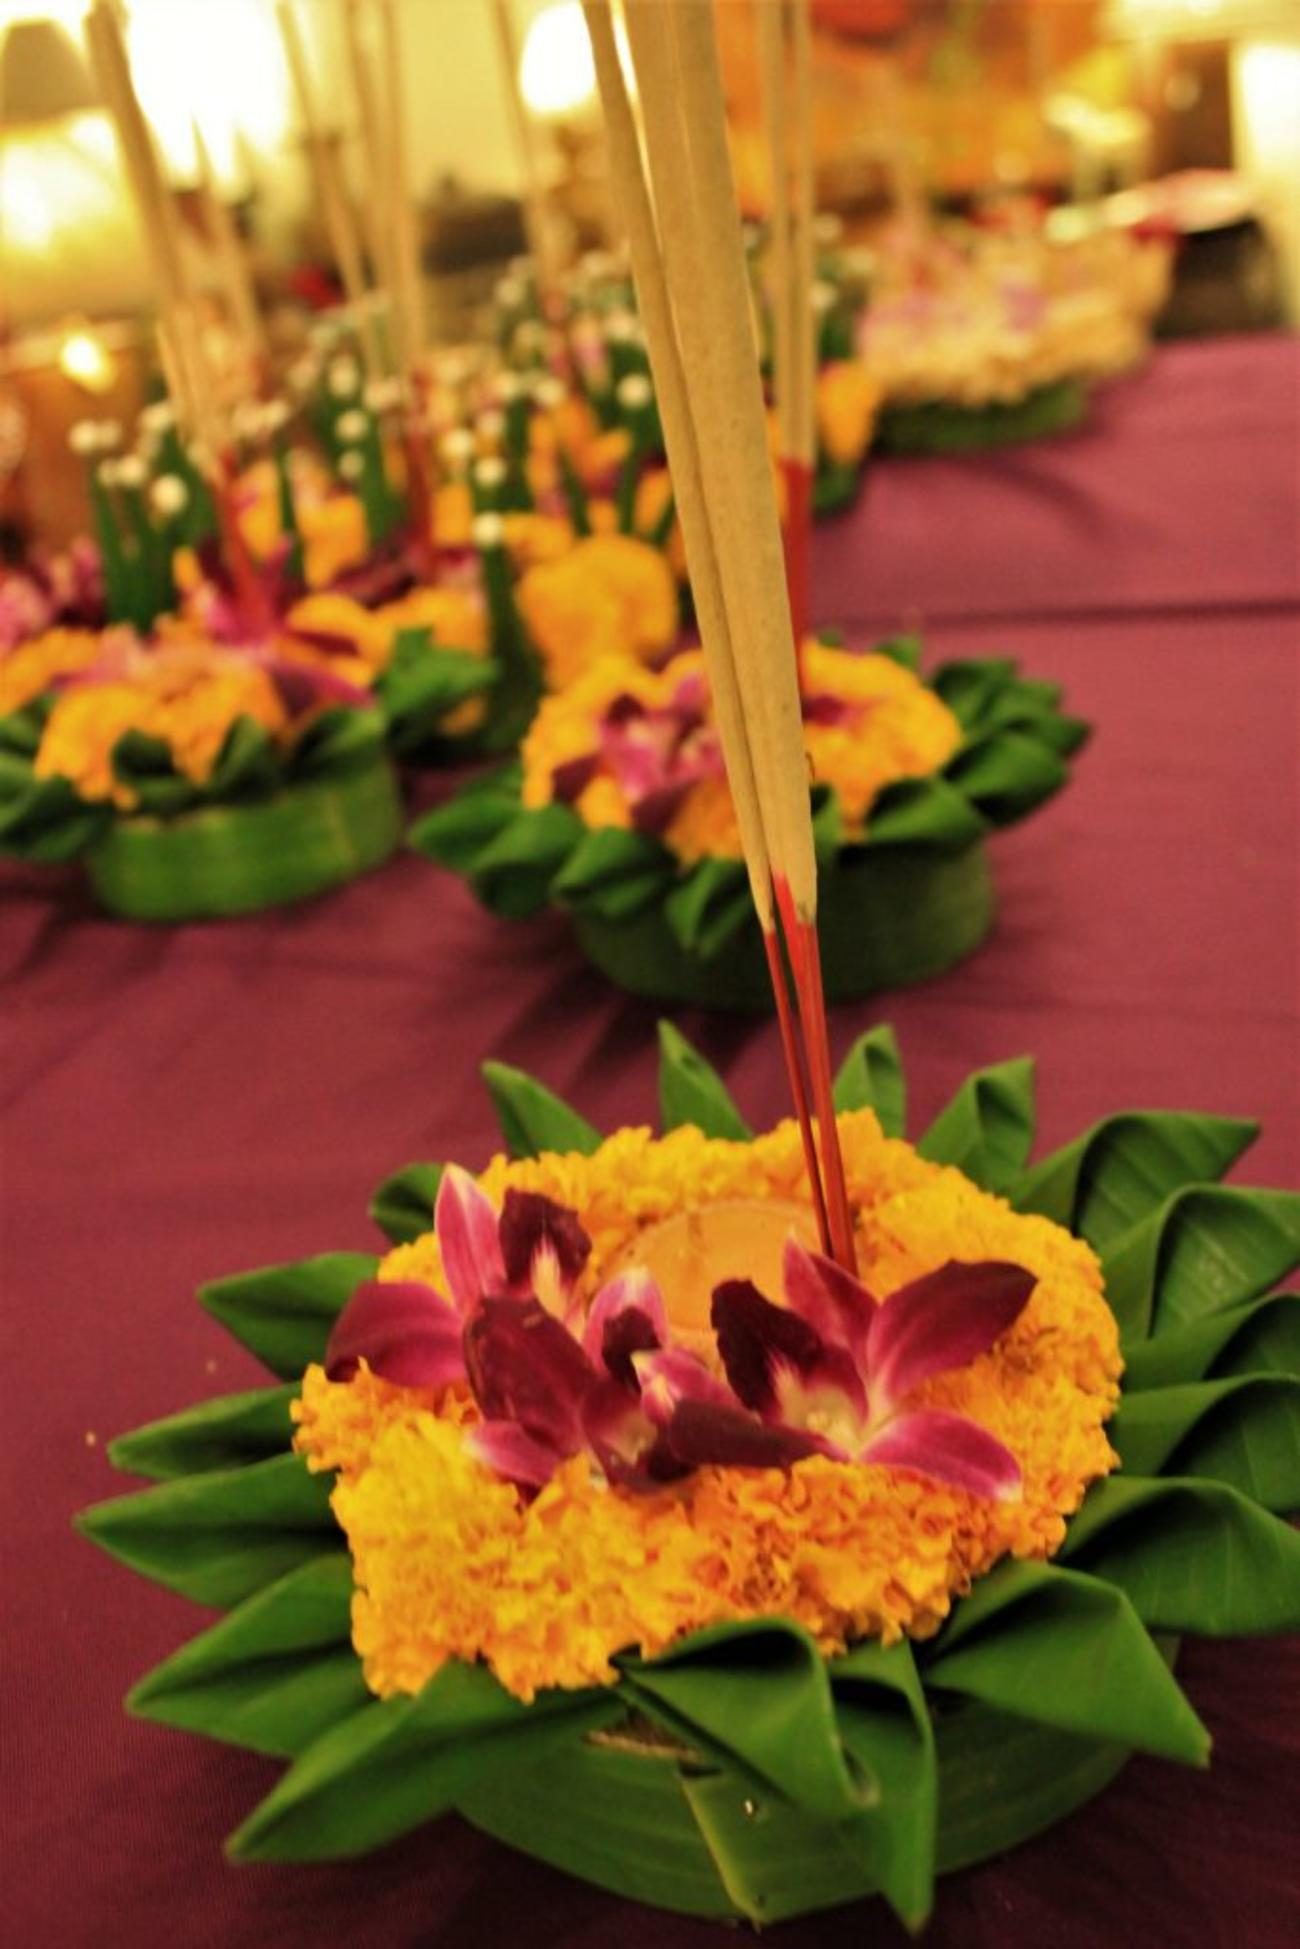 Krathongs are typically made from banana tree wood, flowers, leaves, incense and candles